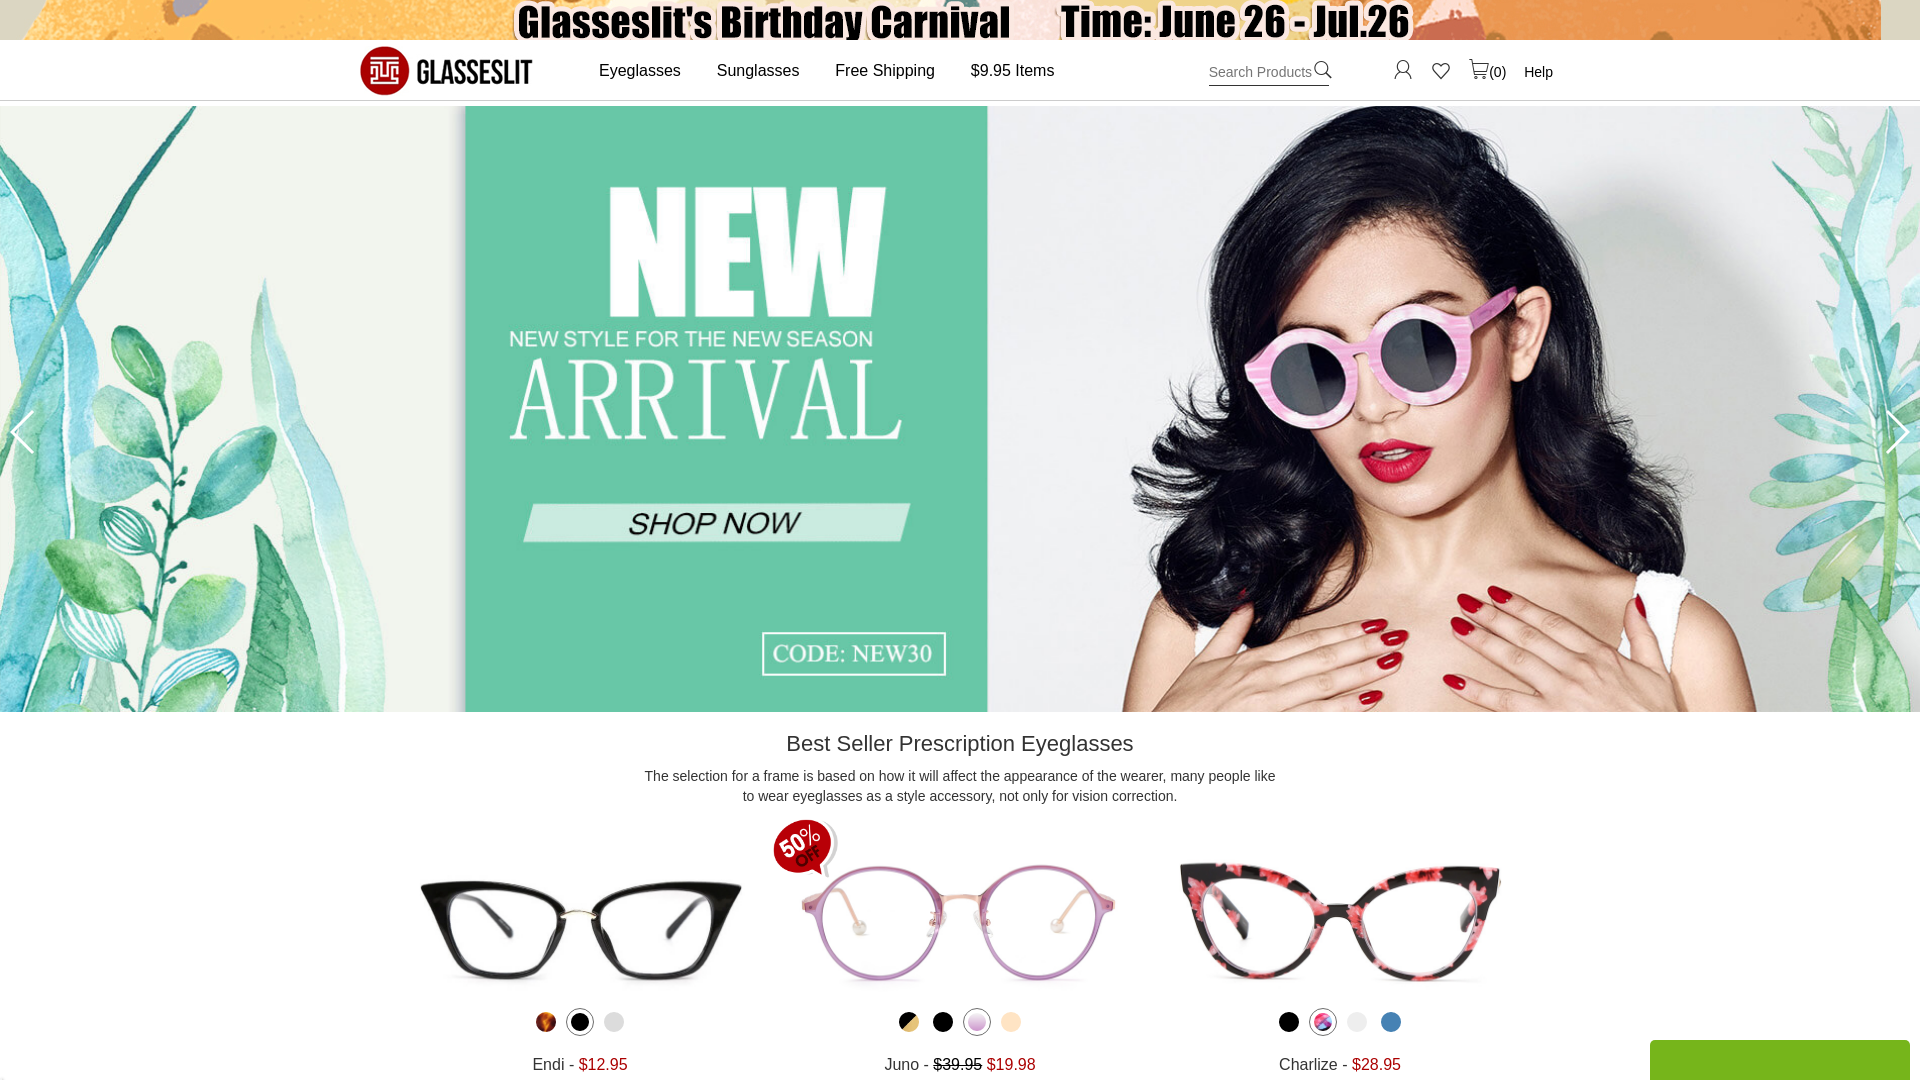 Glasseslit WW website